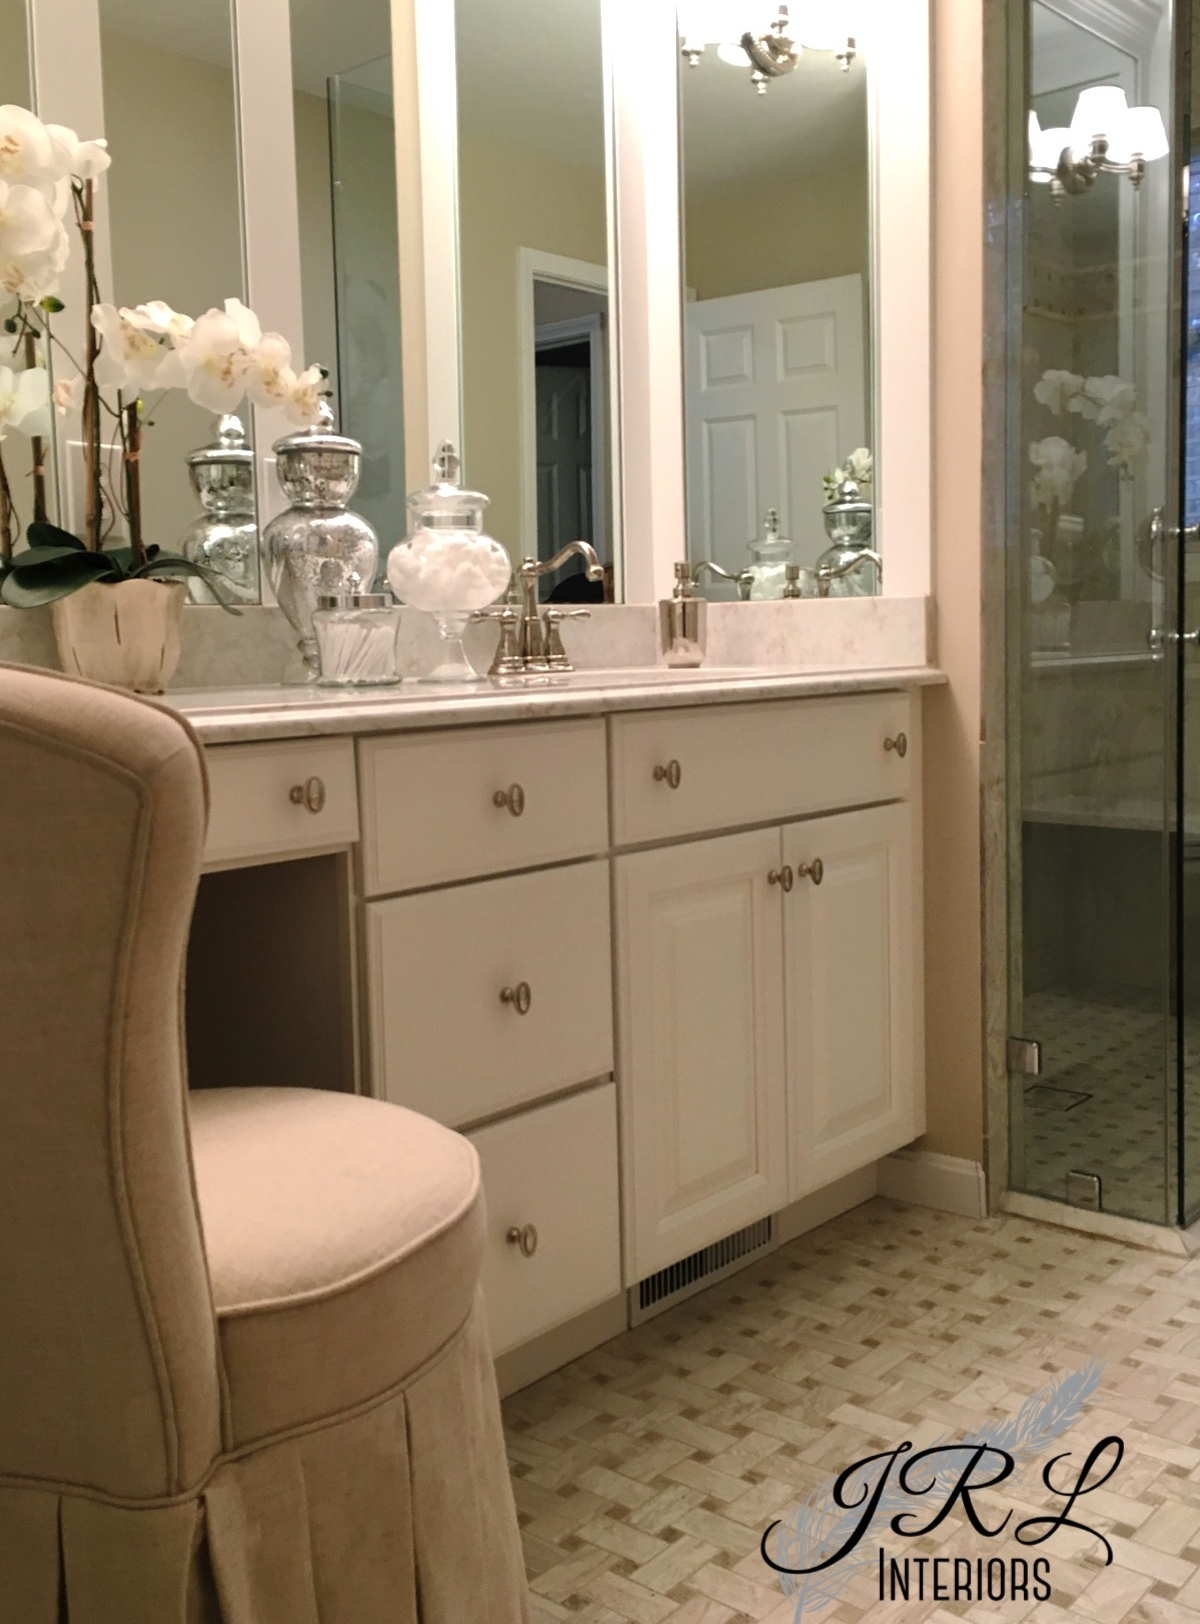 Upholstered linen vanity chair softens the hard surfaces in this Master Bathroom remodel